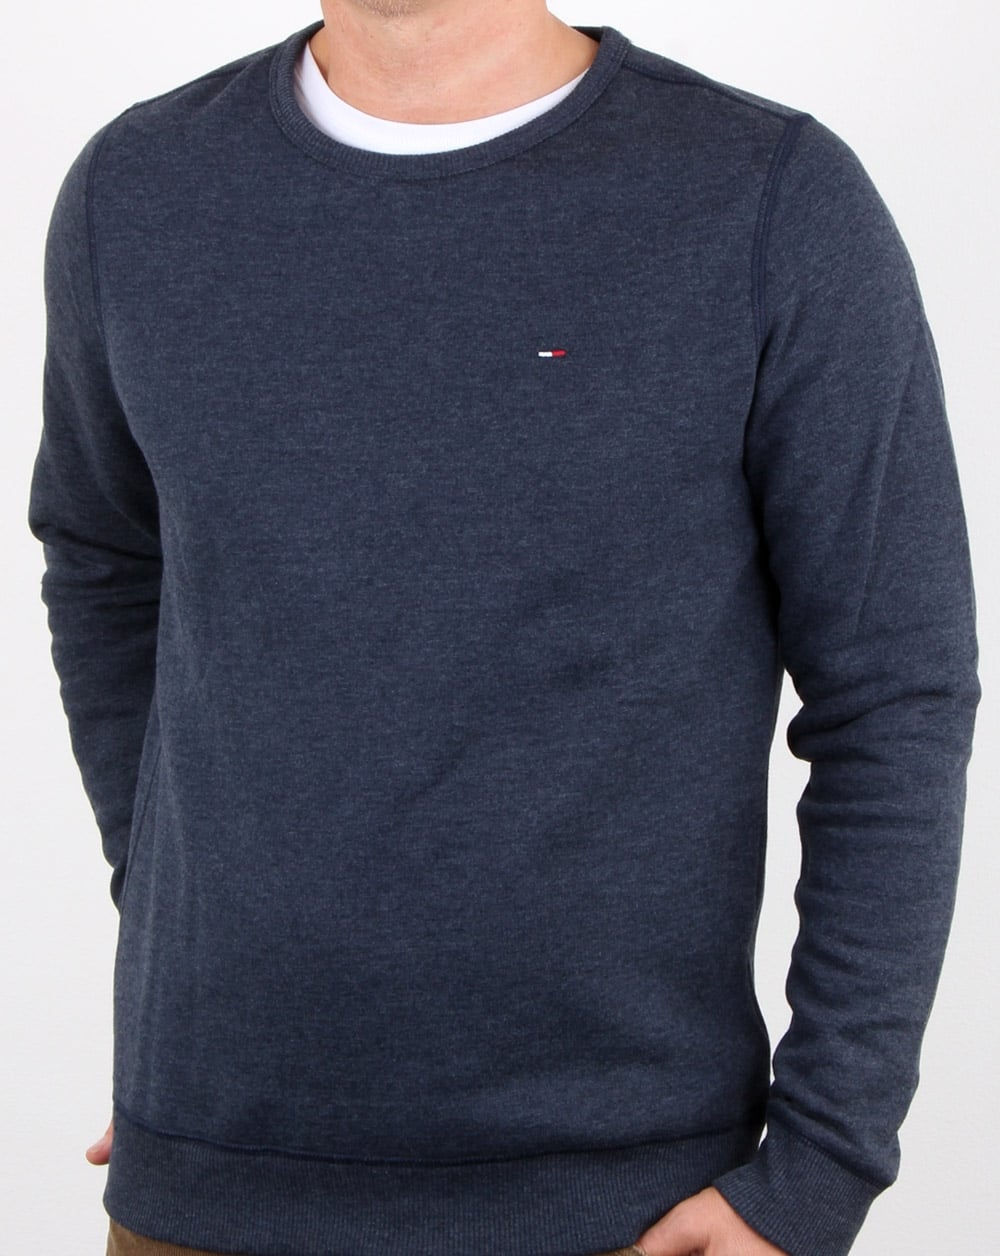 2e5e8a848 Tommy Hilfiger Jeans Tommy Hilfiger Cotton Fleece Sweatshirt Navy